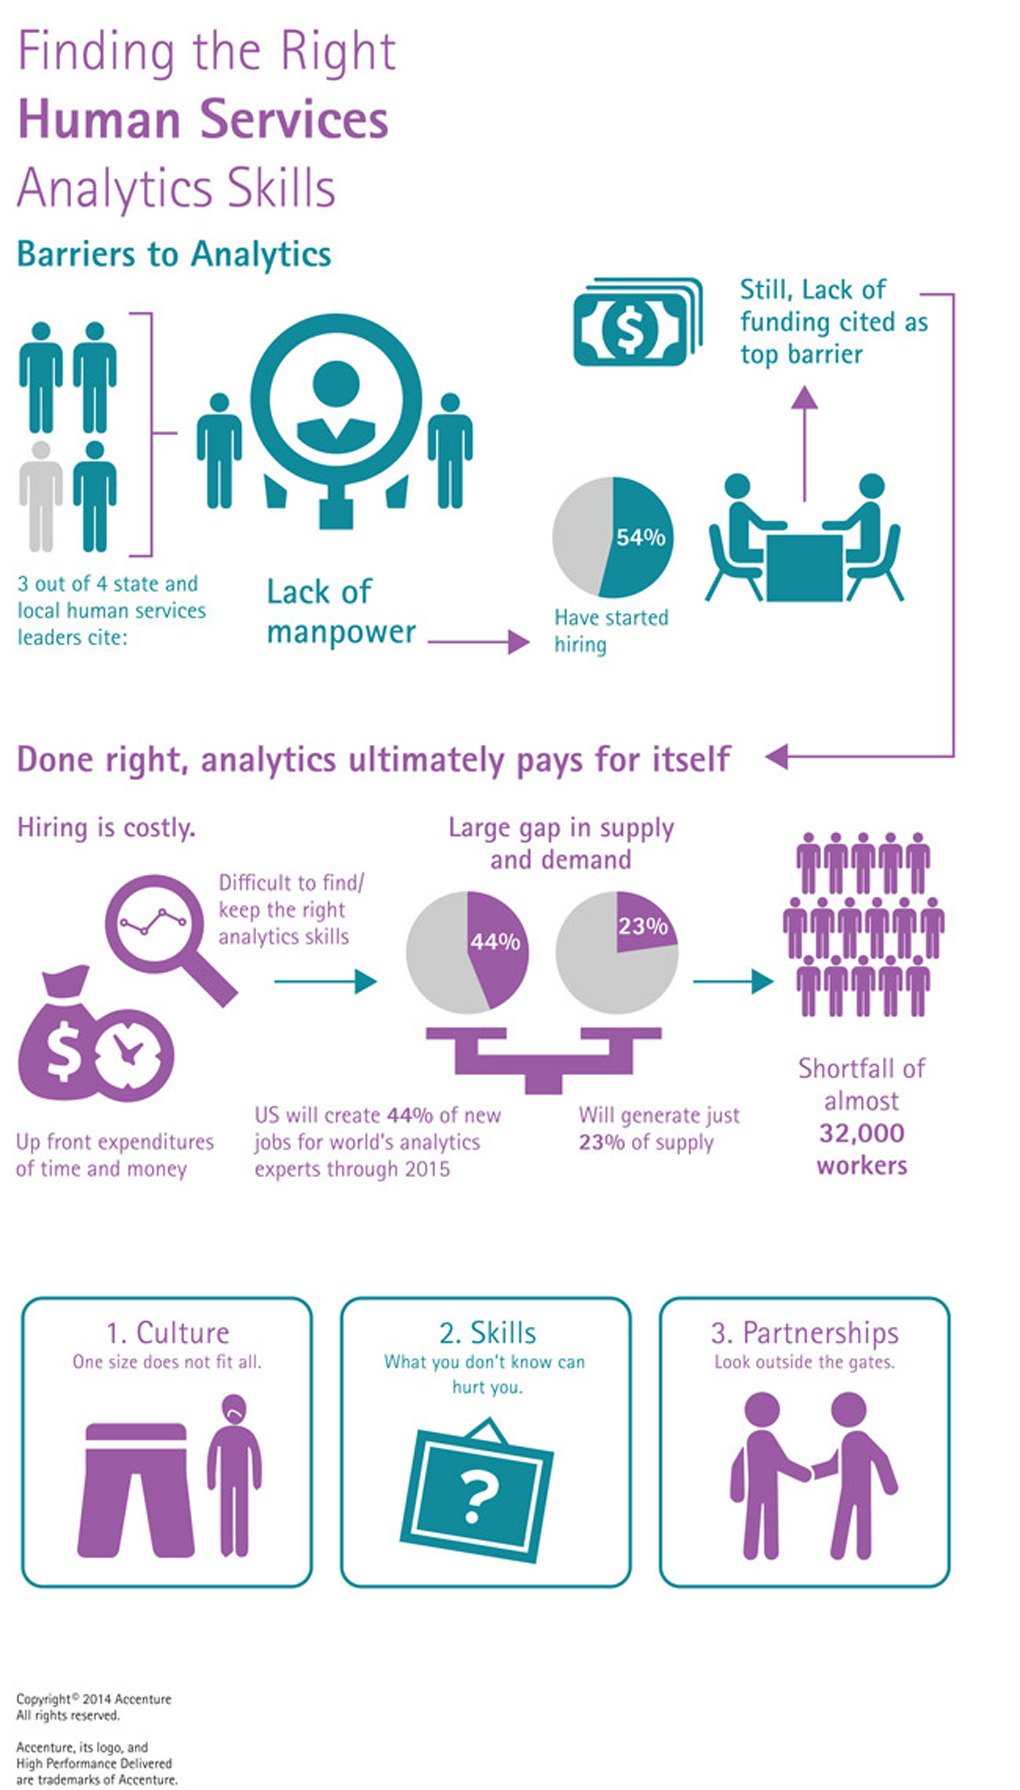 analytics pulse survey finding human services analytics skills finding human services analytics skills